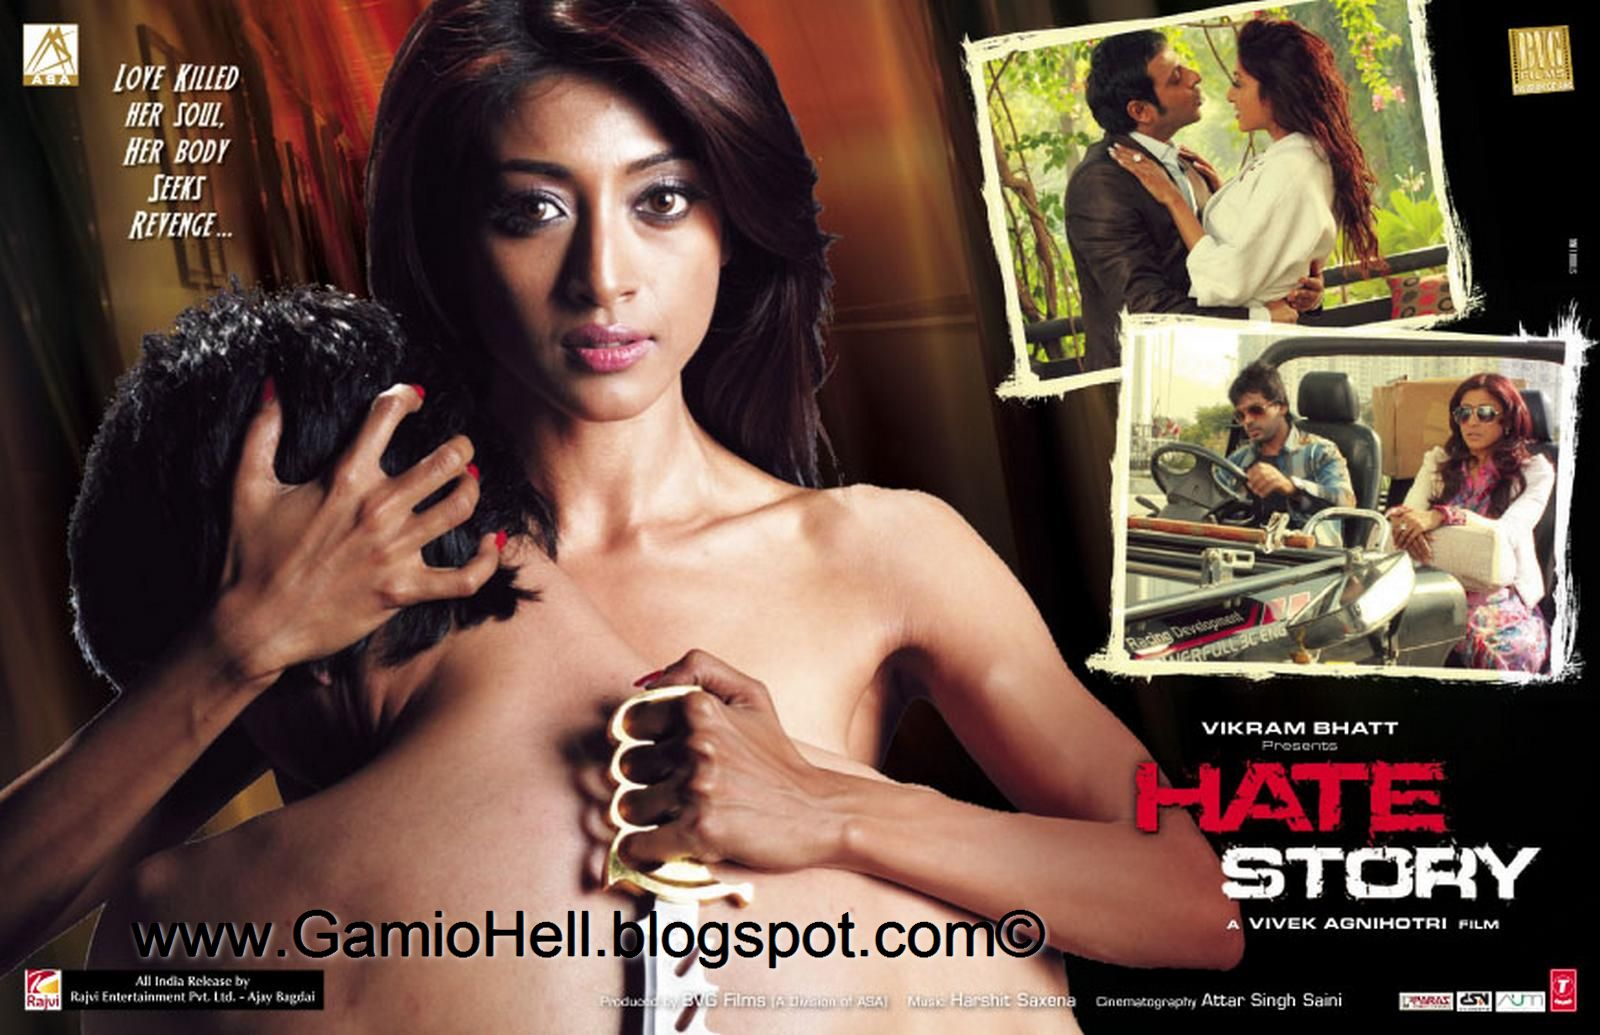 Hate Story 2 (2014) 18 Jul 2014 Adult, Thriller